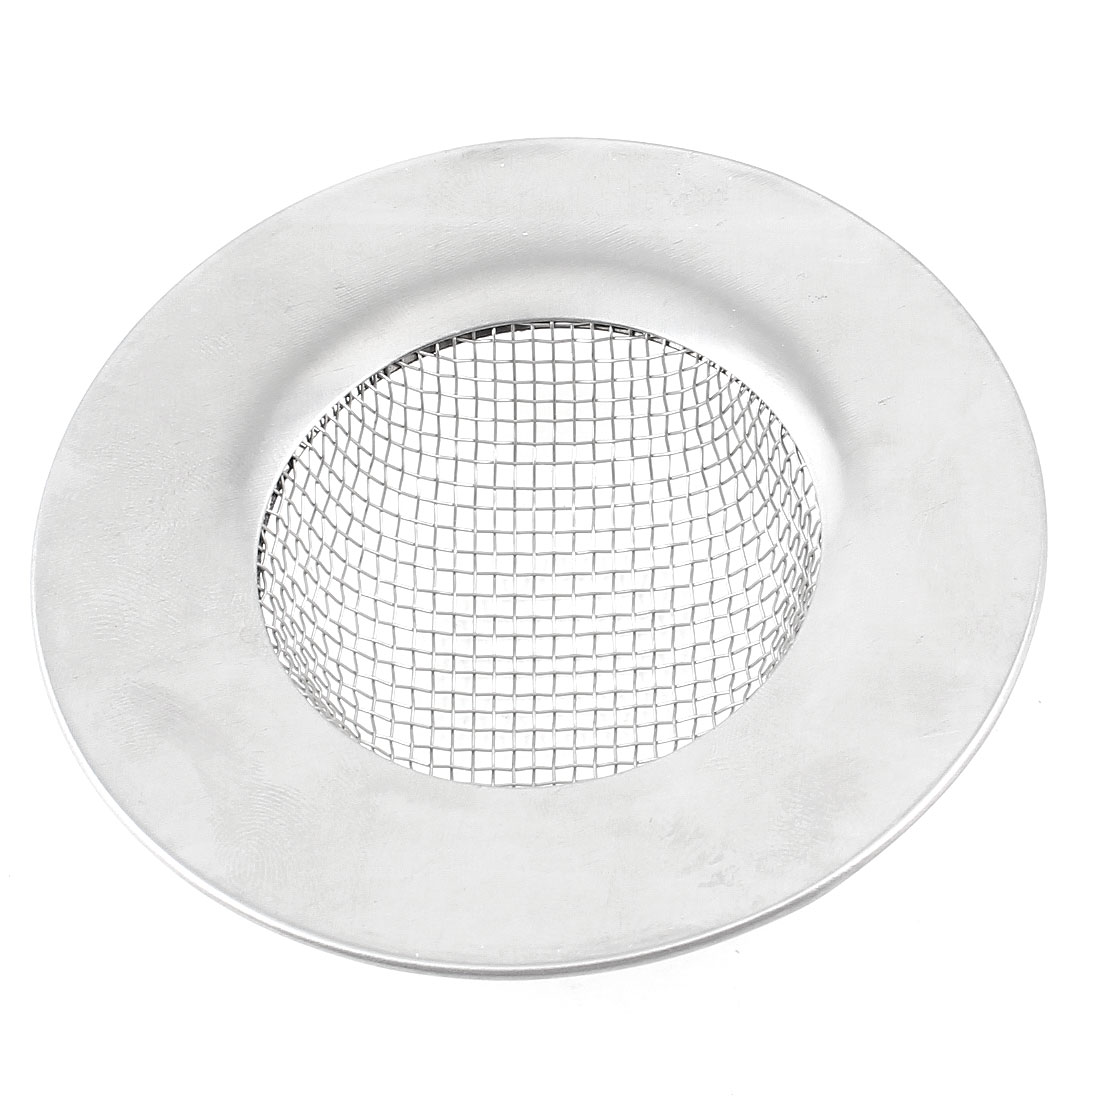 "3.0"" Diameter Water Leak Mesh Floor Drain Basin Sink Strainer Silver Tone"